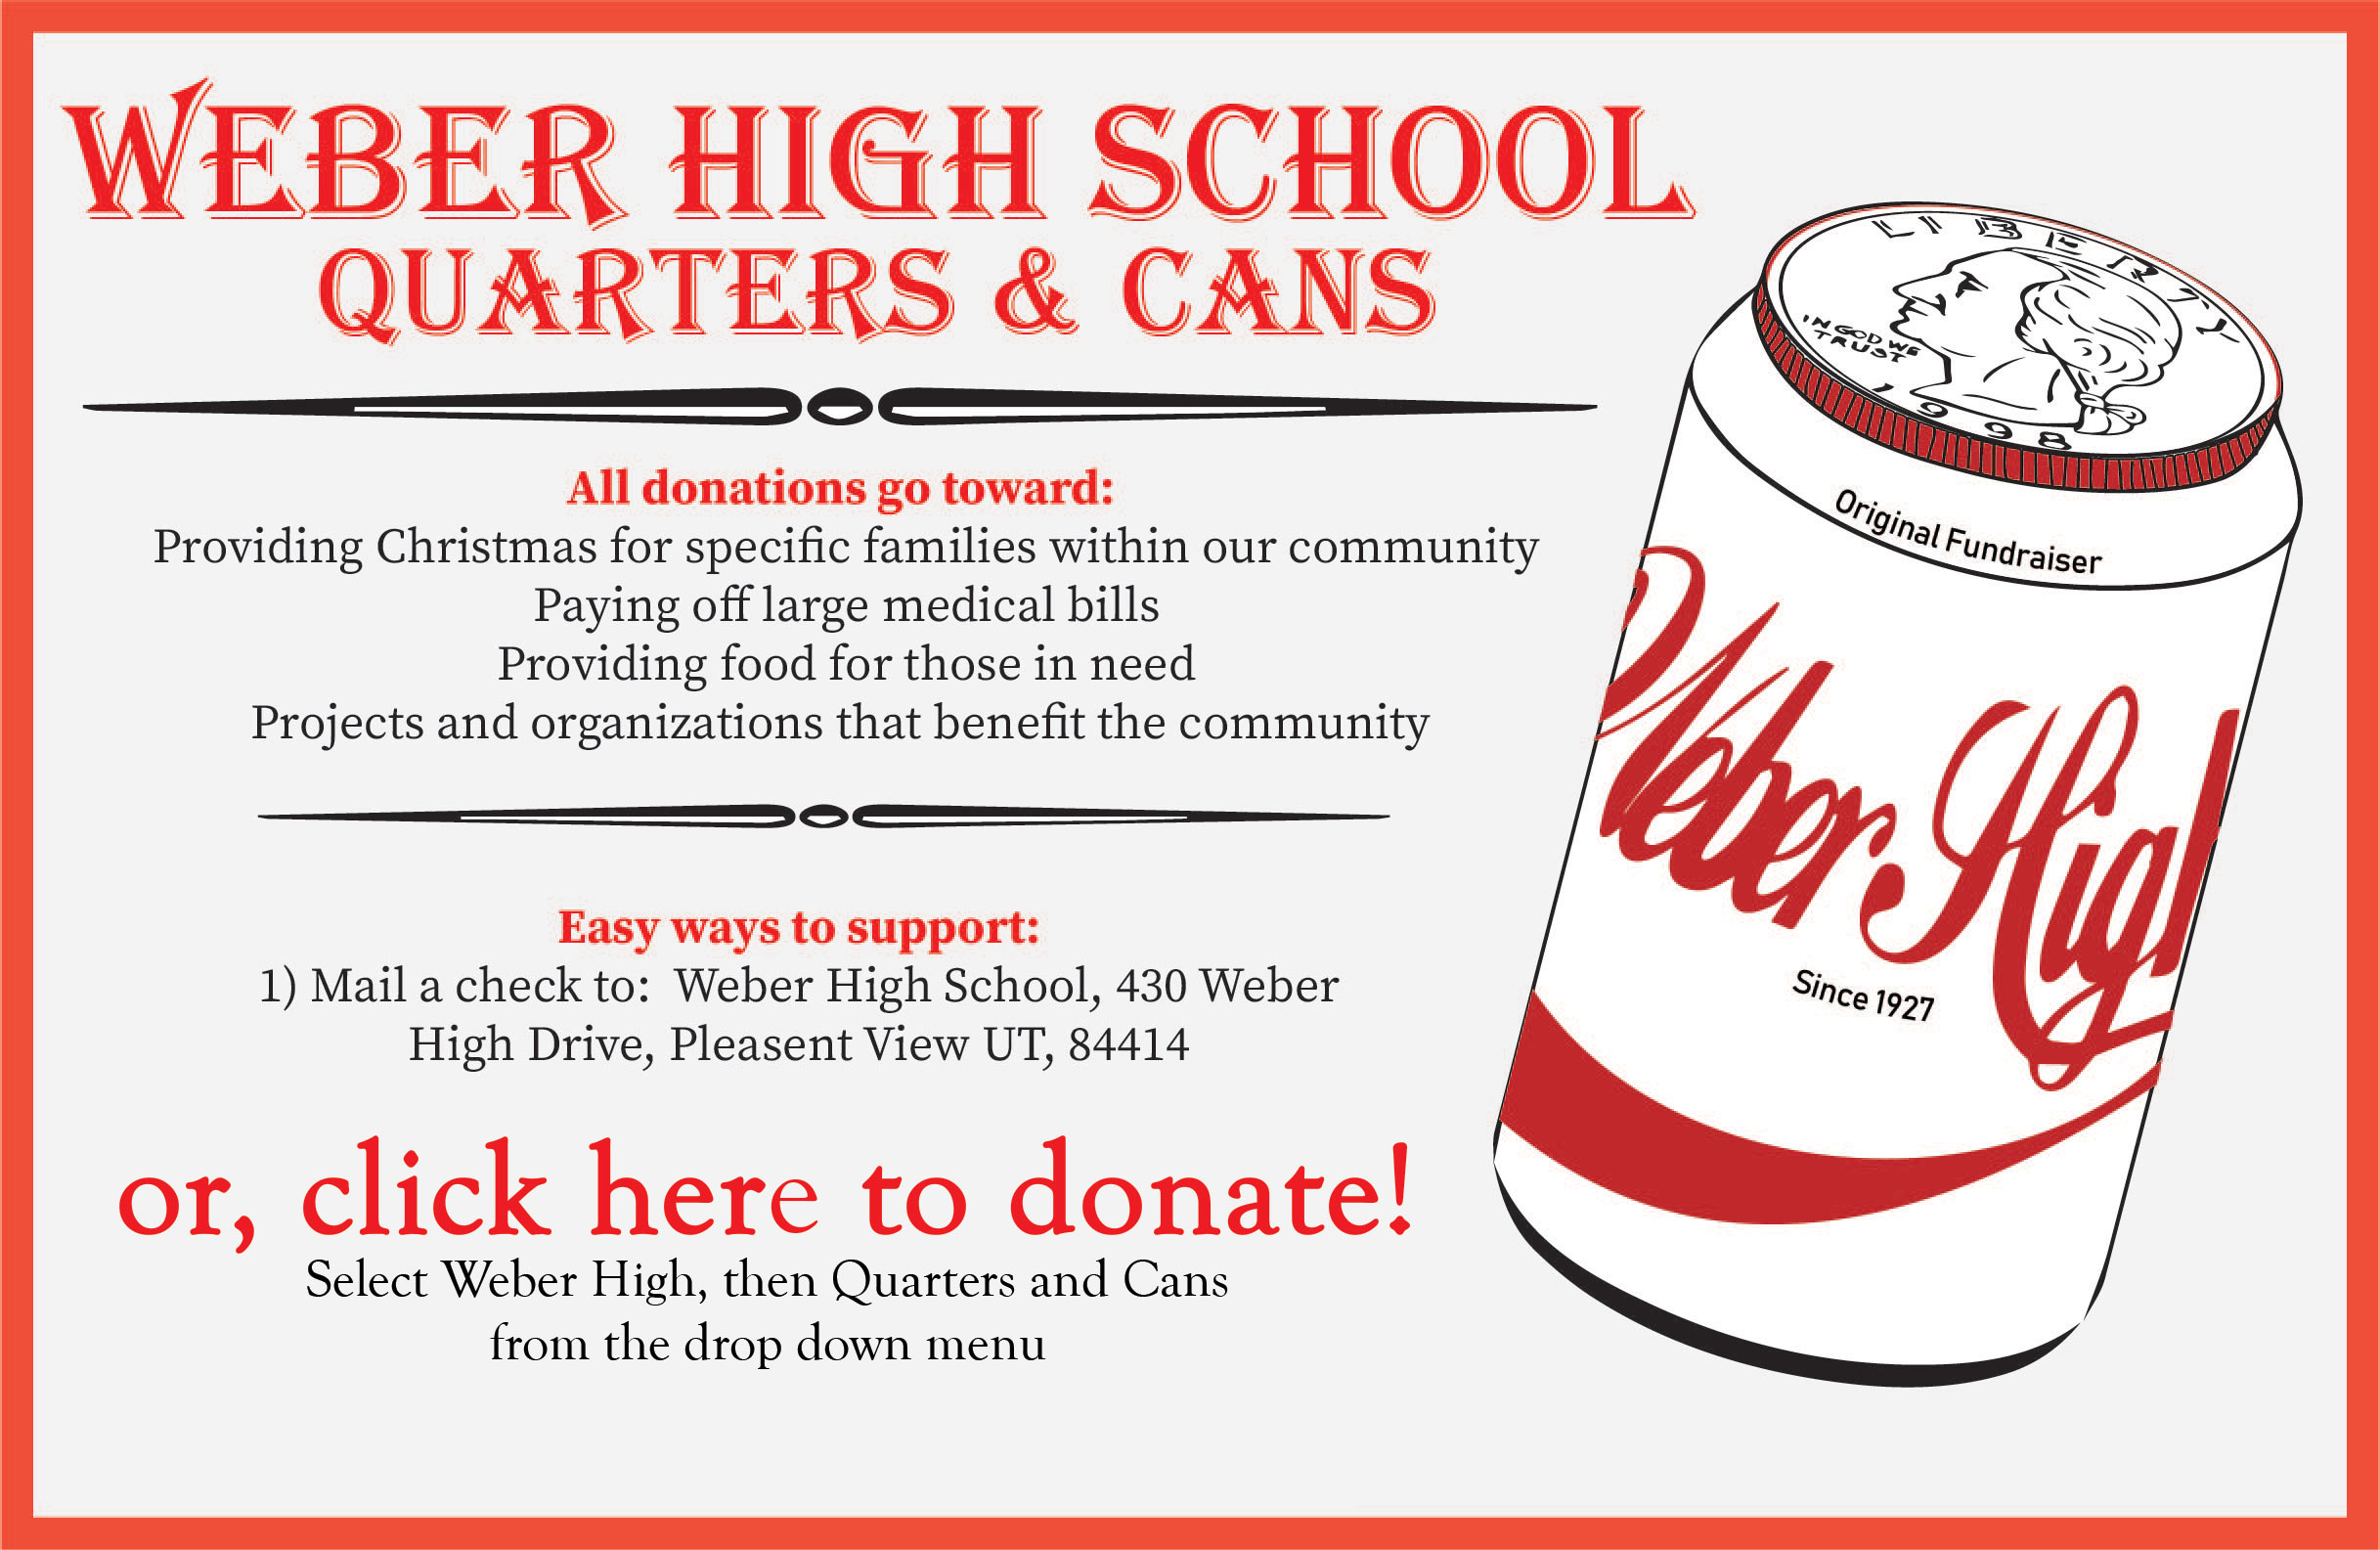 Donate to Quarters and Cans!